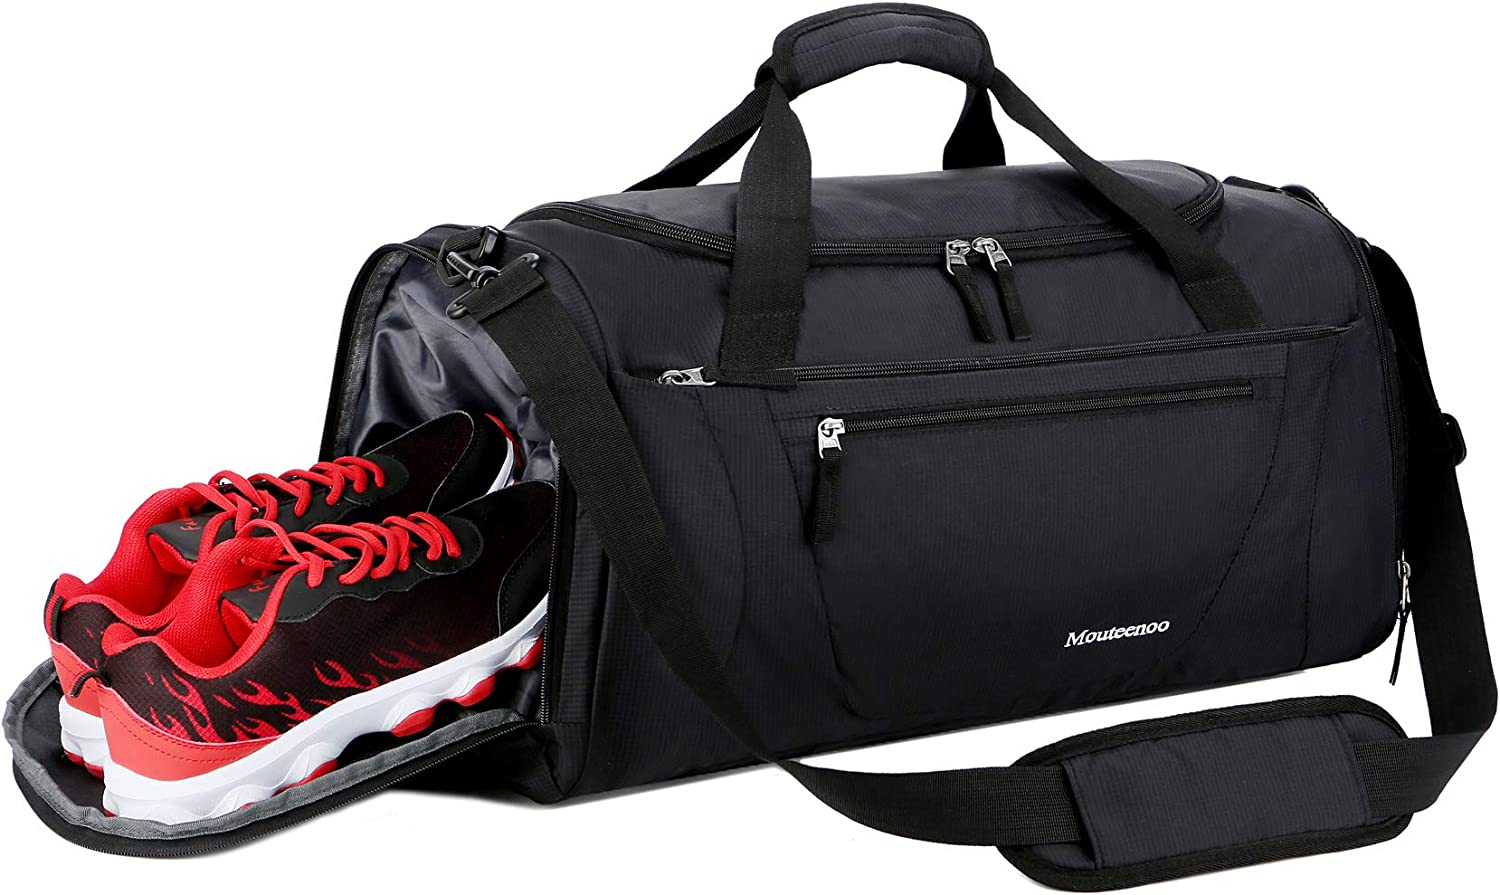 Water Resistant Sports Gym Bag for Women and Men Sports Duffle Luggage Sporty Gear Bag